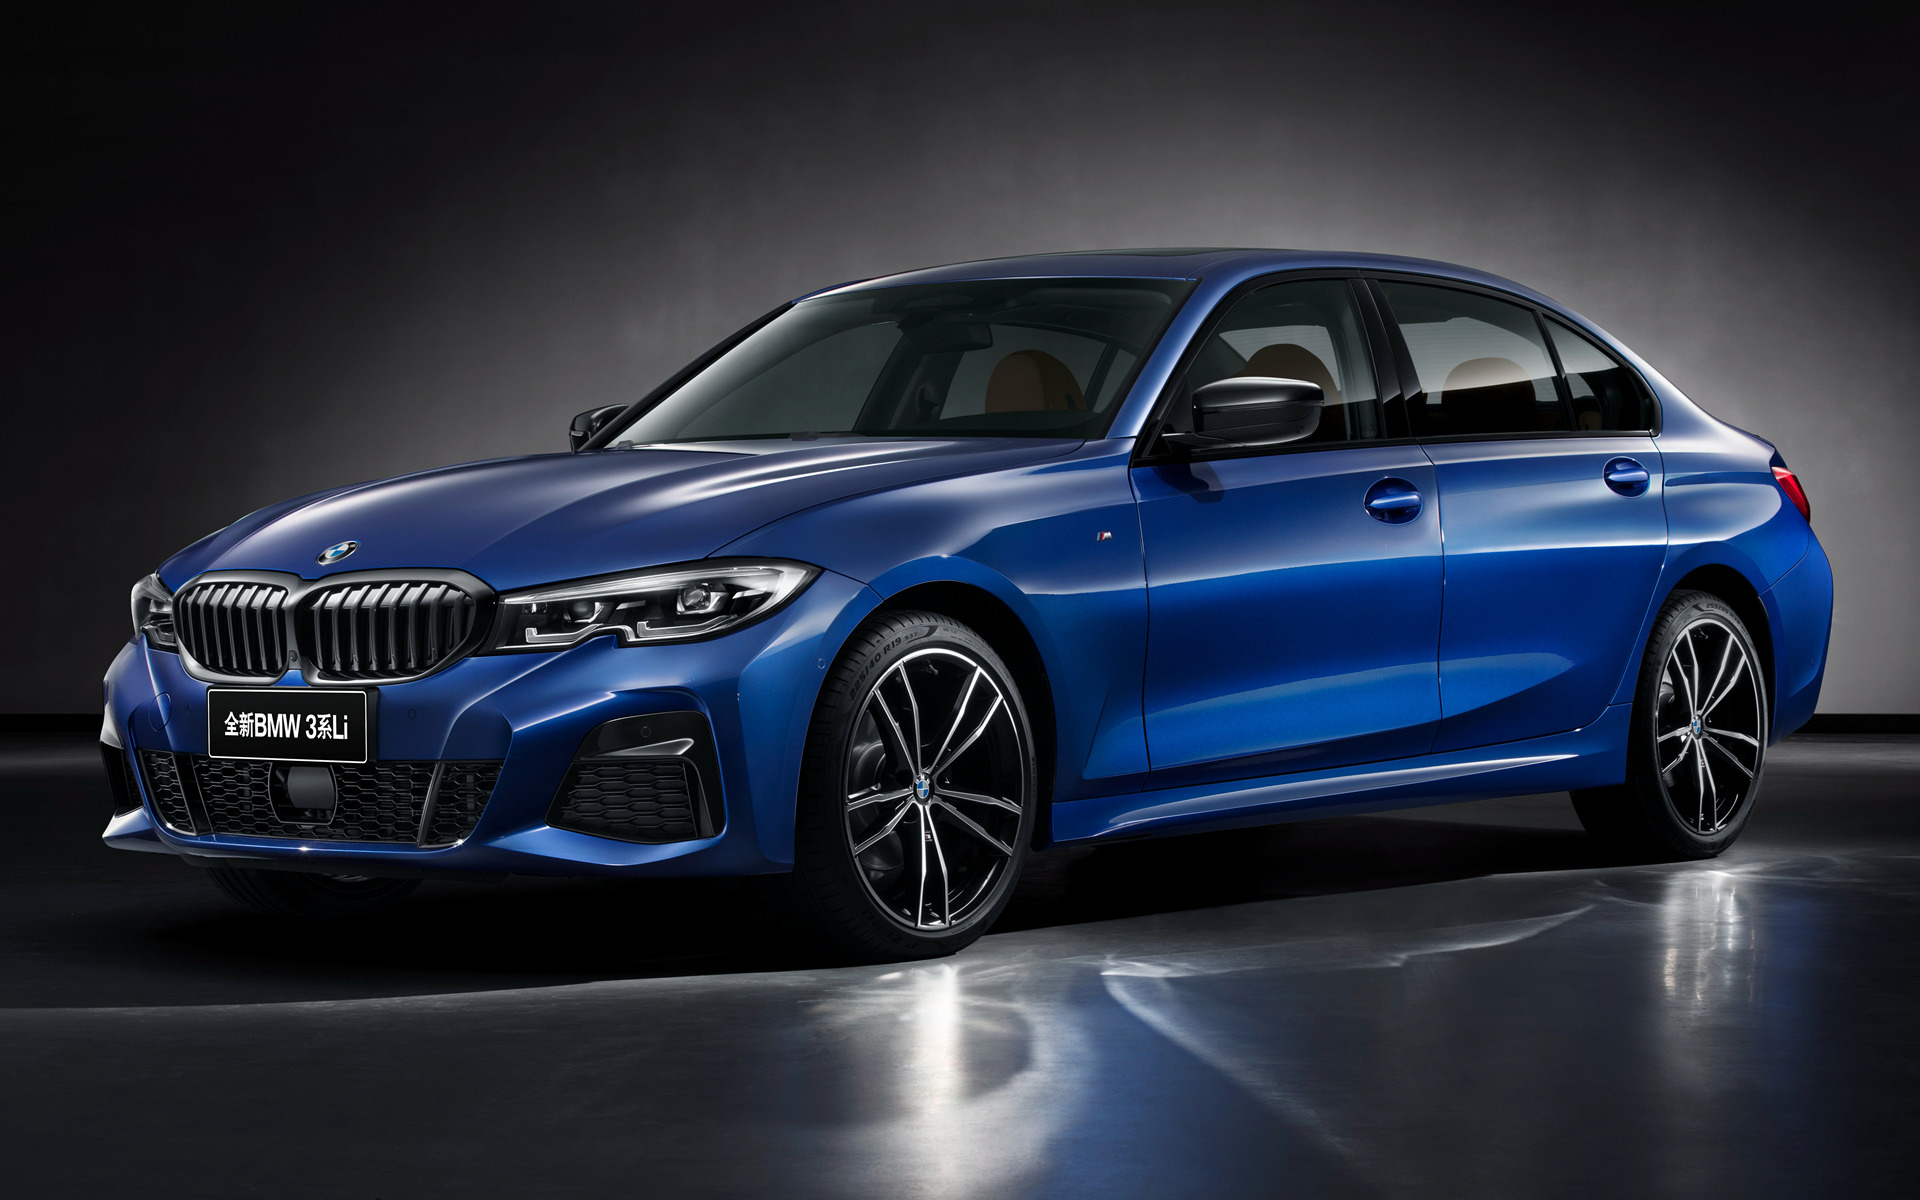 Download 2019 Bmw 3 Series M Sport Lwb Cn Wallpapers And Hd Images